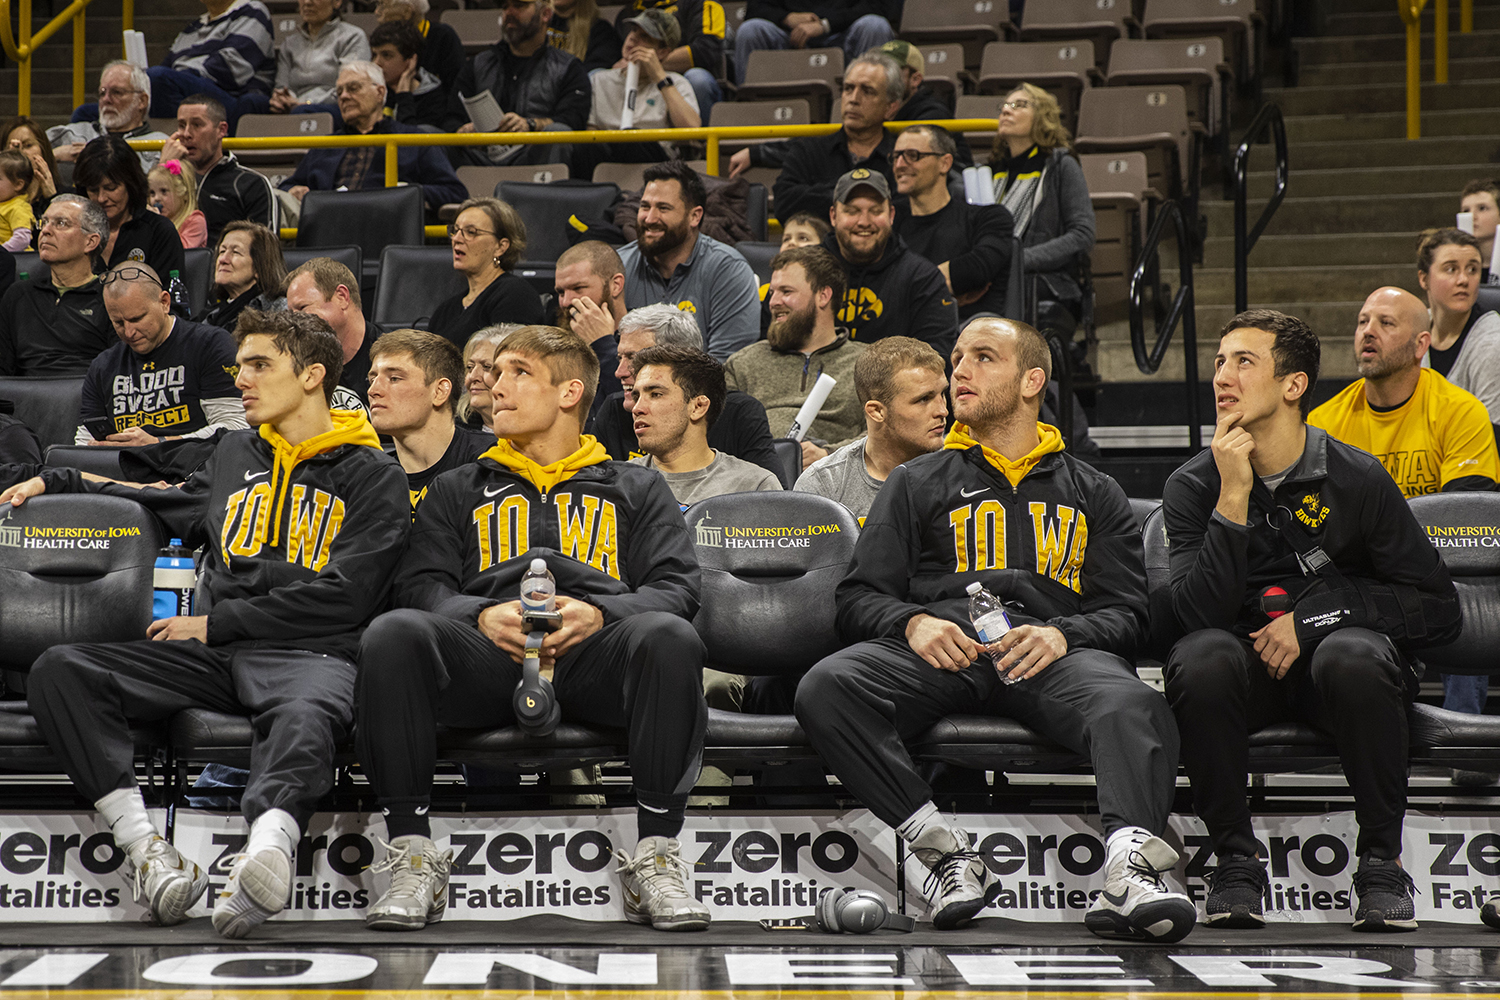 The+Iowa+bench+spectates+during+the+Iowa%2FRutgers+wrestling+meet+at+Carver-Hawkeye+Arena+on+Friday%2C+January+18%2C+2019.+The+Hawkeyes+defeated+the+Scarlet+Knights%2C+30-6.+